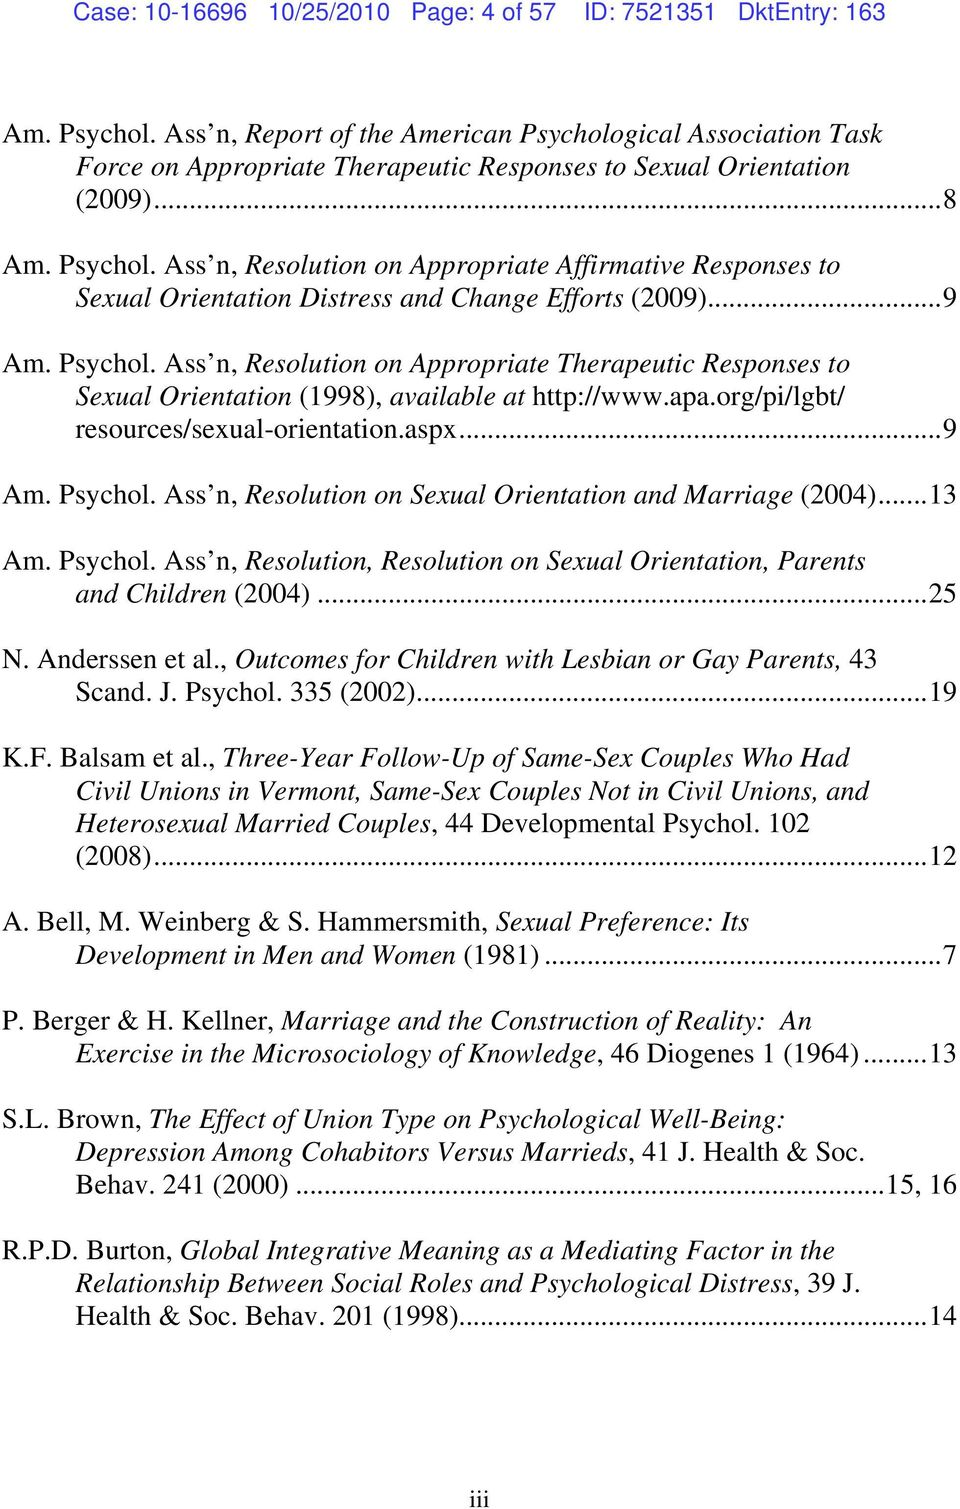 ..9 Am. Psychol. Ass n, Resolution on Appropriate Therapeutic Responses to Sexual Orientation (1998), available at http://www.apa.org/pi/lgbt/ resources/sexual-orientation.aspx...9 Am. Psychol. Ass n, Resolution on Sexual Orientation and Marriage (2004).